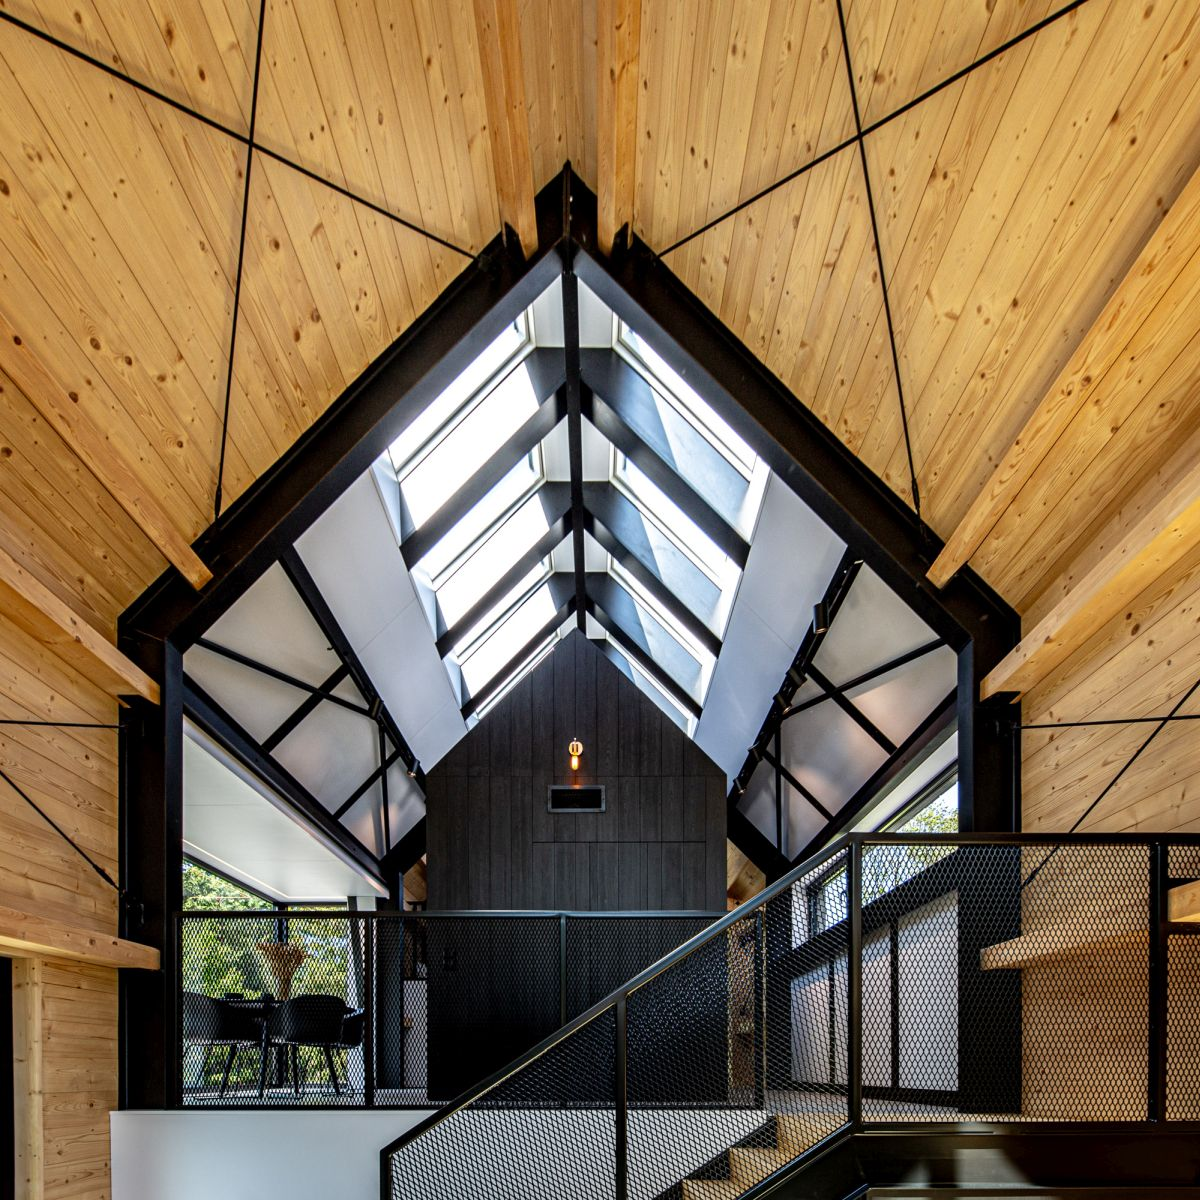 A series of skylights bring natural light into the upstairs volumes